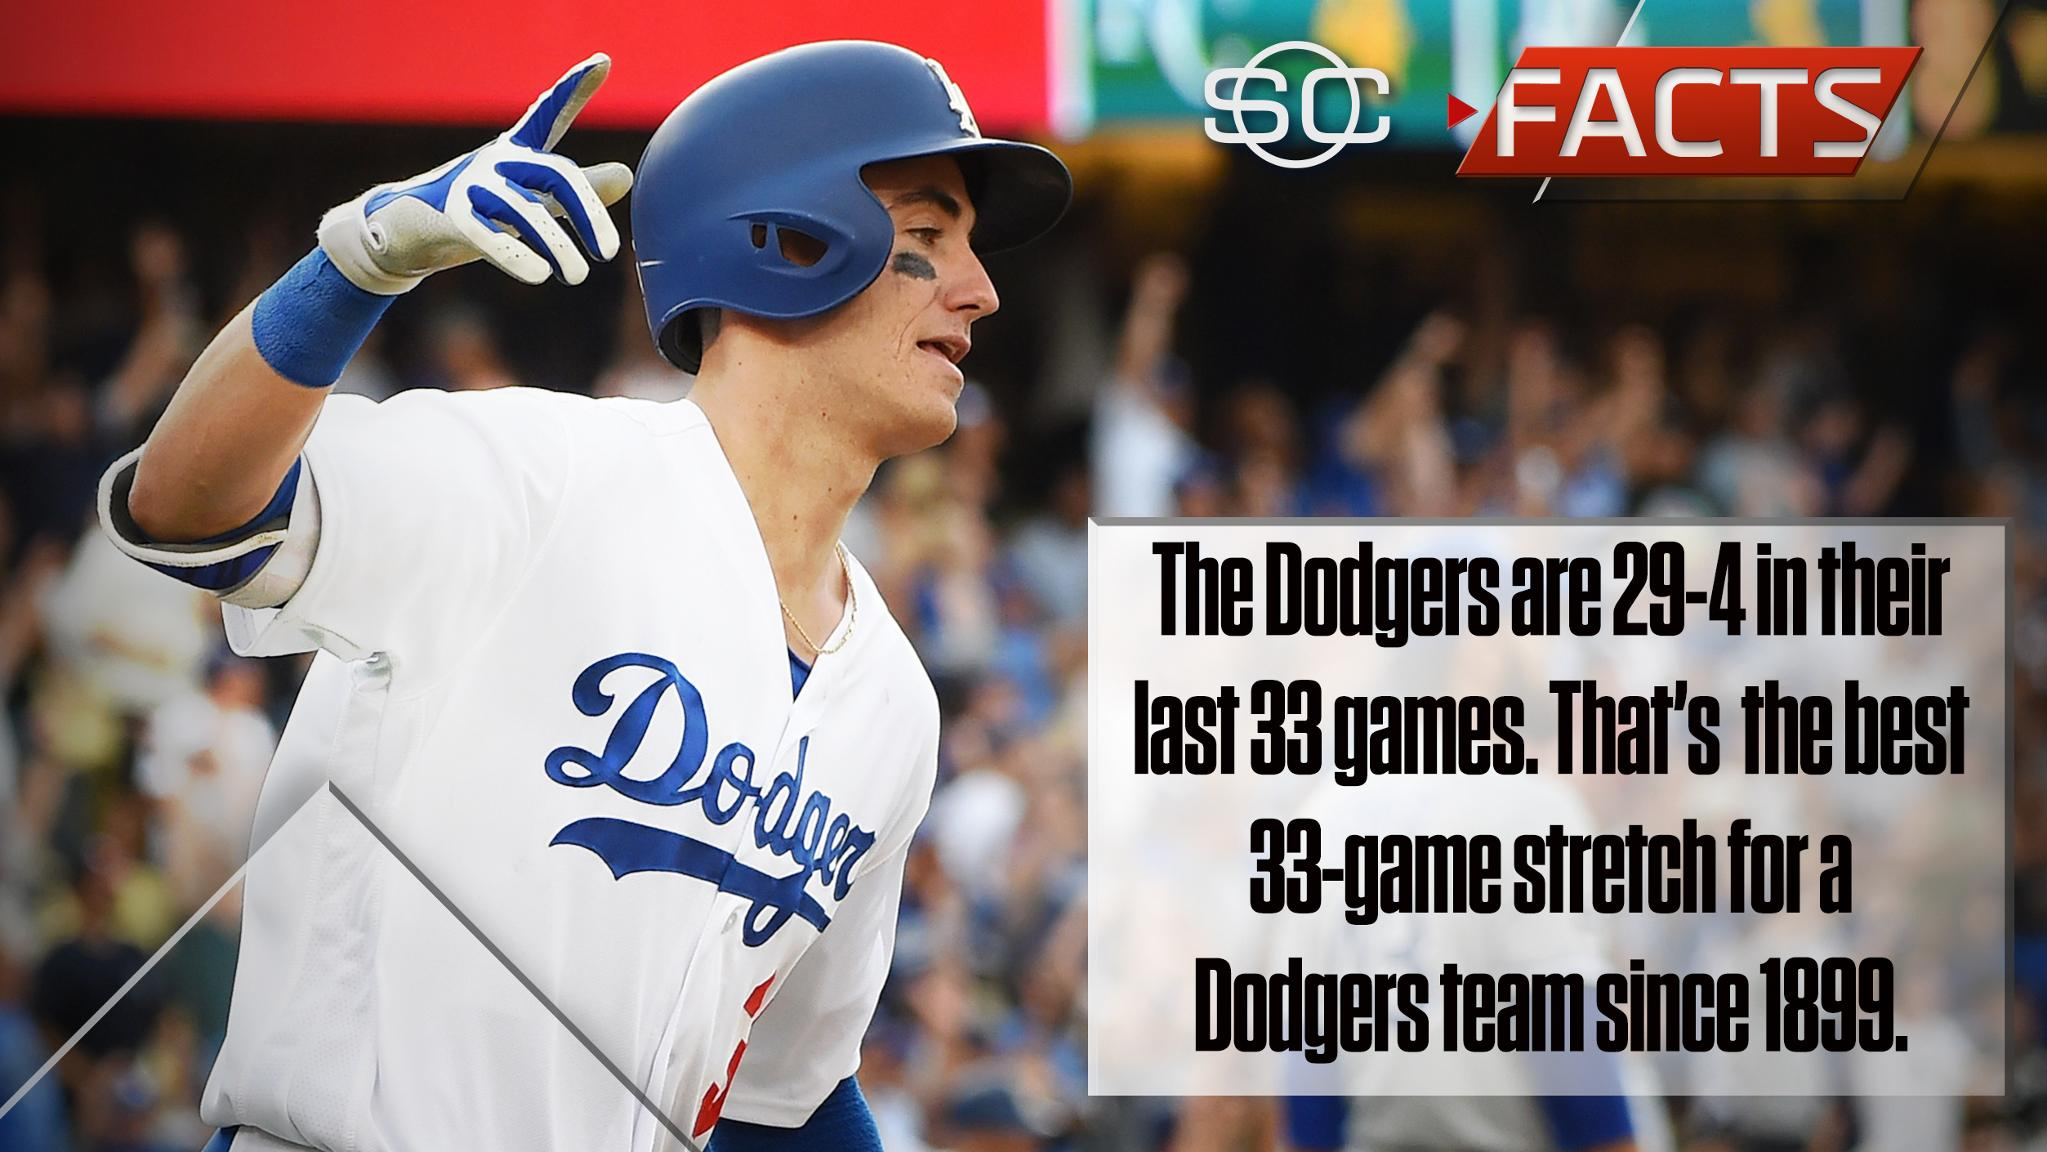 That's 96 years before Cody Bellinger was born. #SCFacts https://t.co/jCzgJM6Rb2